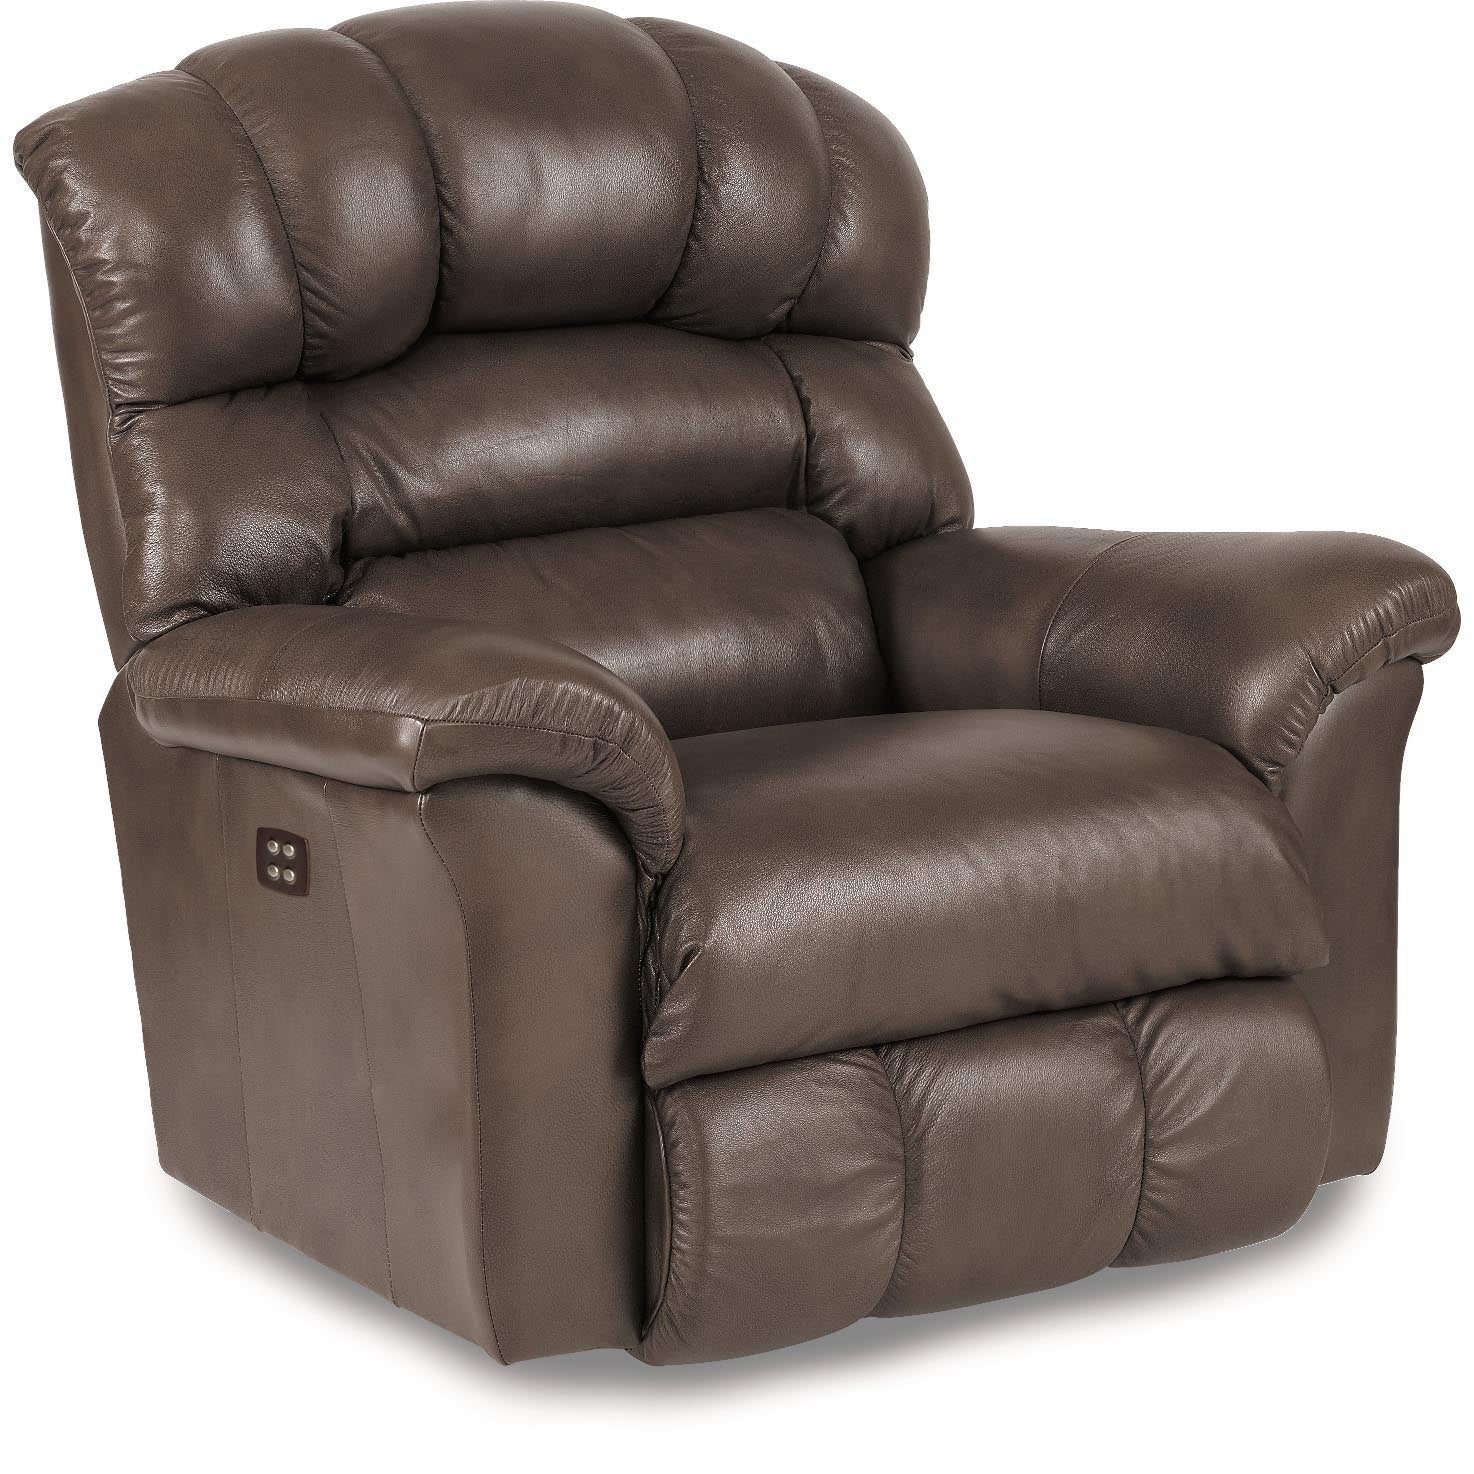 Crandell Powerreclinexrw Reclina Way 174 Recliner